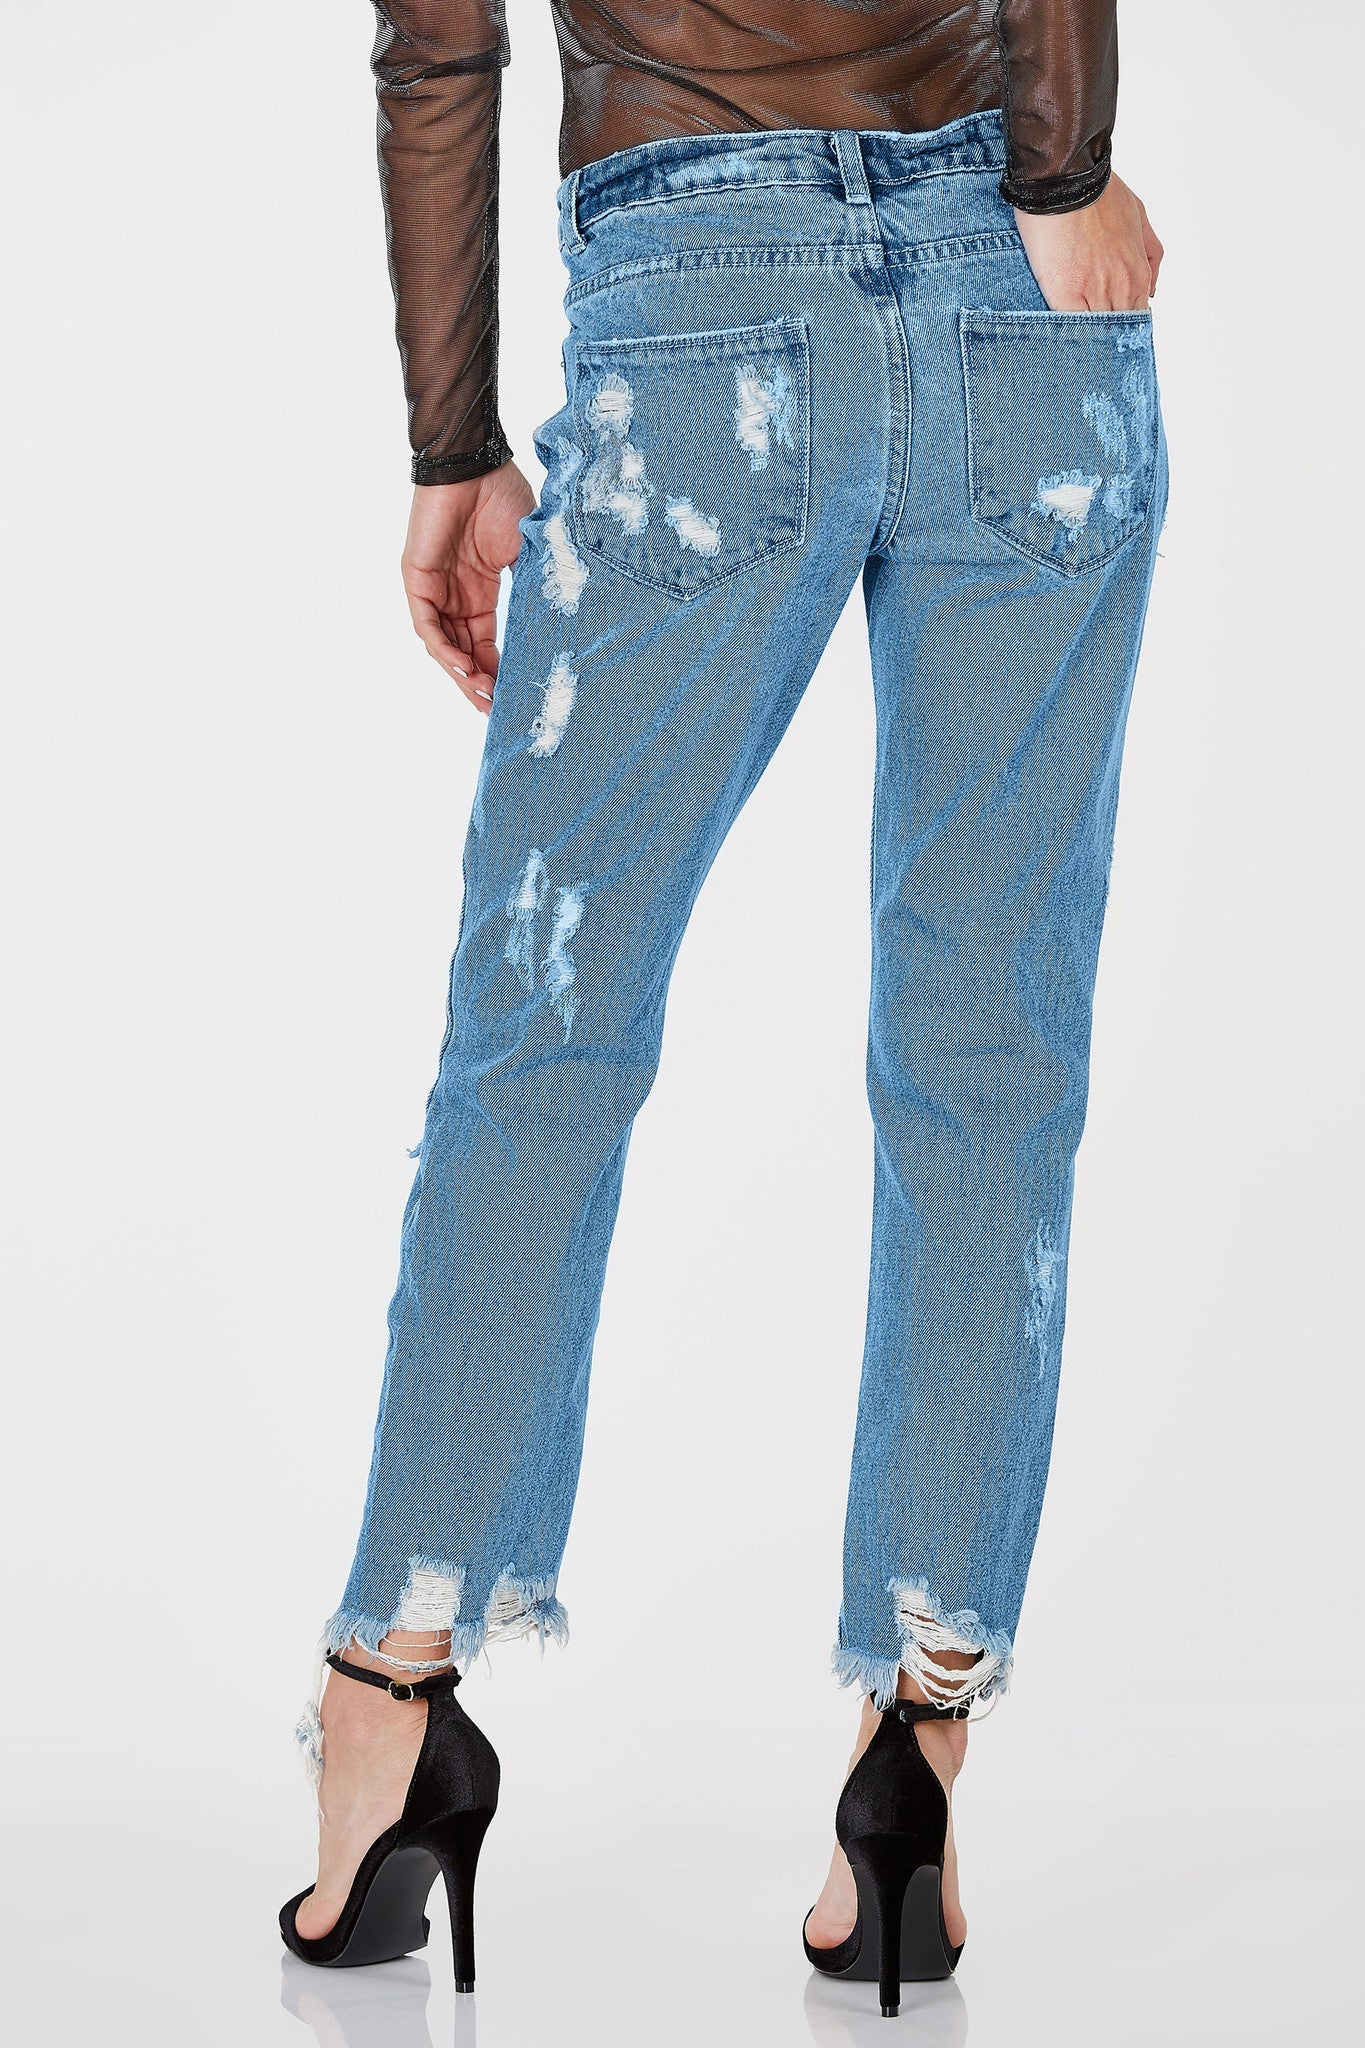 An intensely distressed pair of jeans with a trendy girlfriend fit. Incredible raw, frayed hem brings a stylish, laid back vibe. Perfect wash of sturdy denim, great to pair with a graphic tee and sneakers for a lazy day outfit!